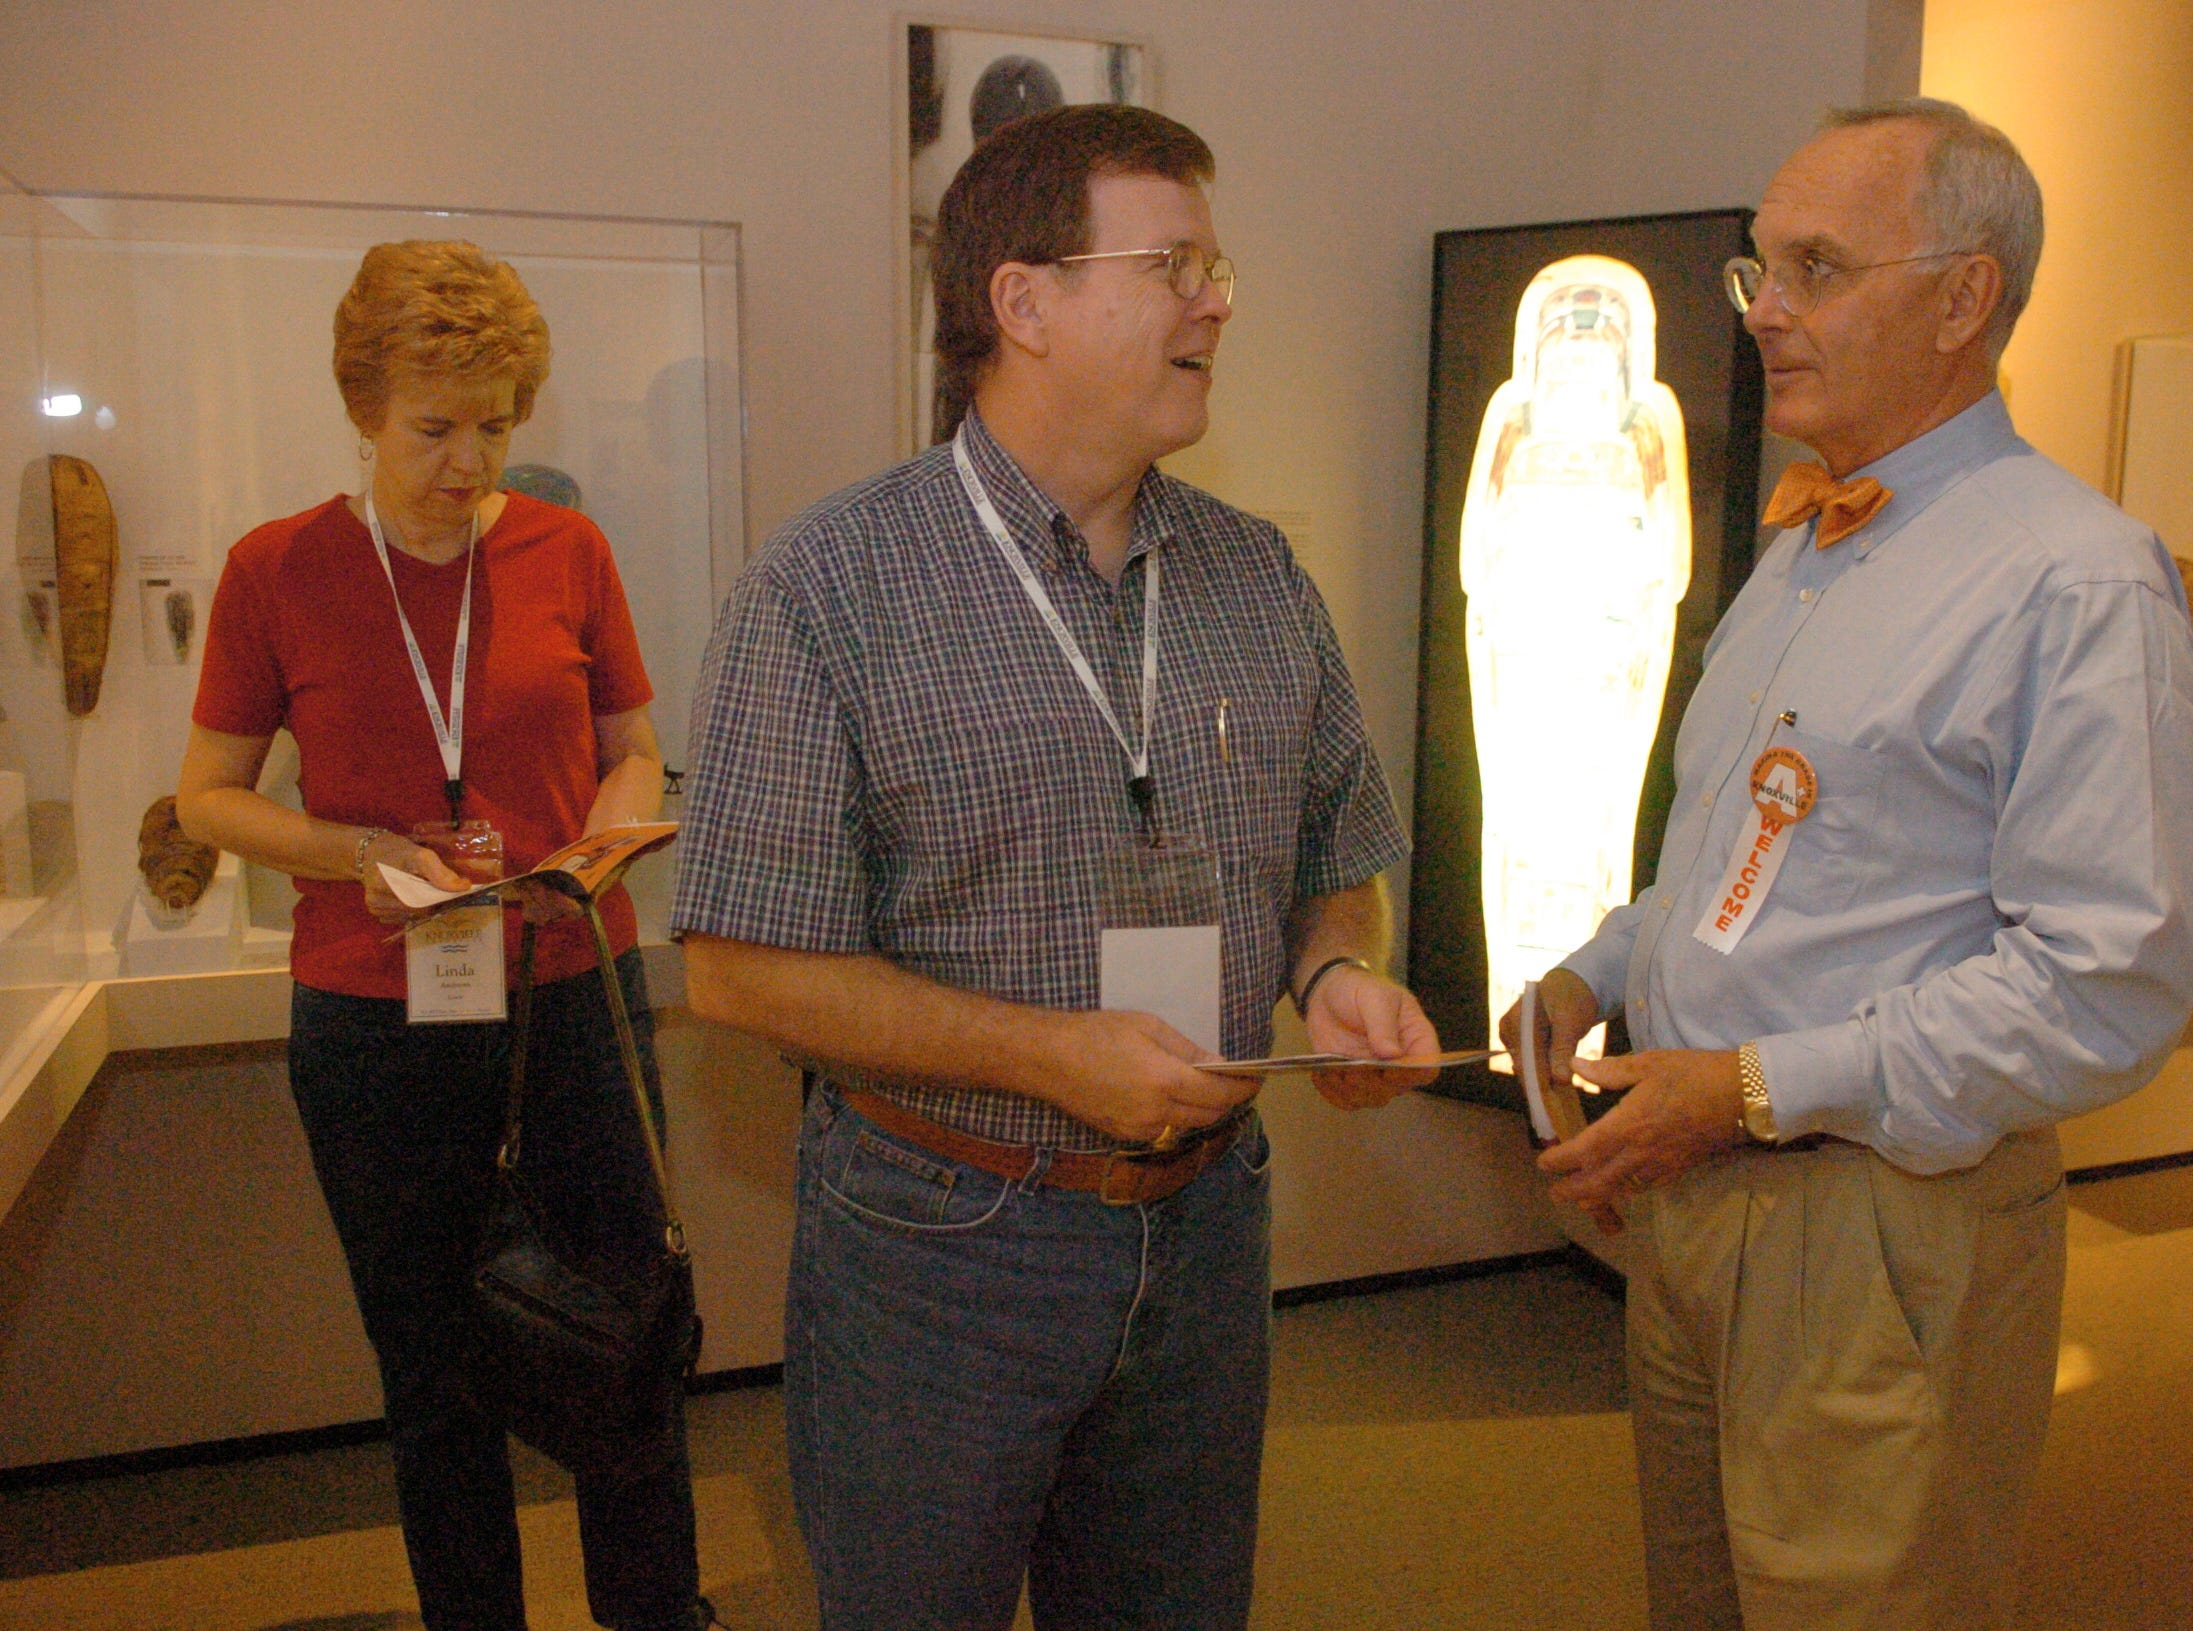 Linda and Don Andrews of Chattnooga pause to talk with Jefferson Chapman, Ph.D. Director the Frank H. McClung Museum. Chapman was answering Andrews questions about the Egiptain artifacts now on display at the Museum.